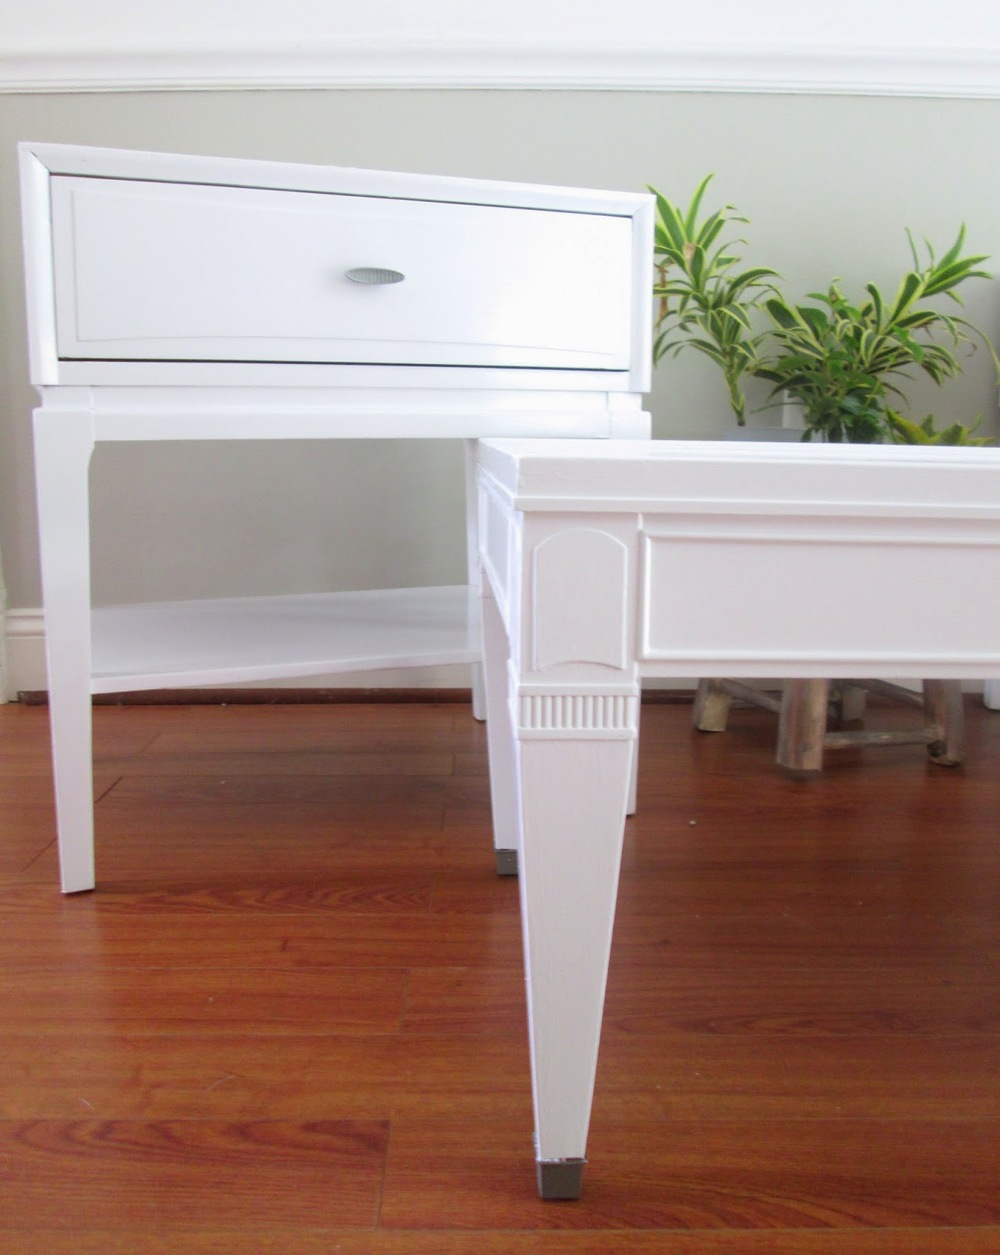 stunning white lacquer nightstand furniture. Seriously Stunning, Right?! And The Smooth, Shiny Finish Is Just Amazing. I Mean, You Could Ice Skate On Surfaces, That\u0027s How Glassy They Are. Stunning White Lacquer Nightstand Furniture